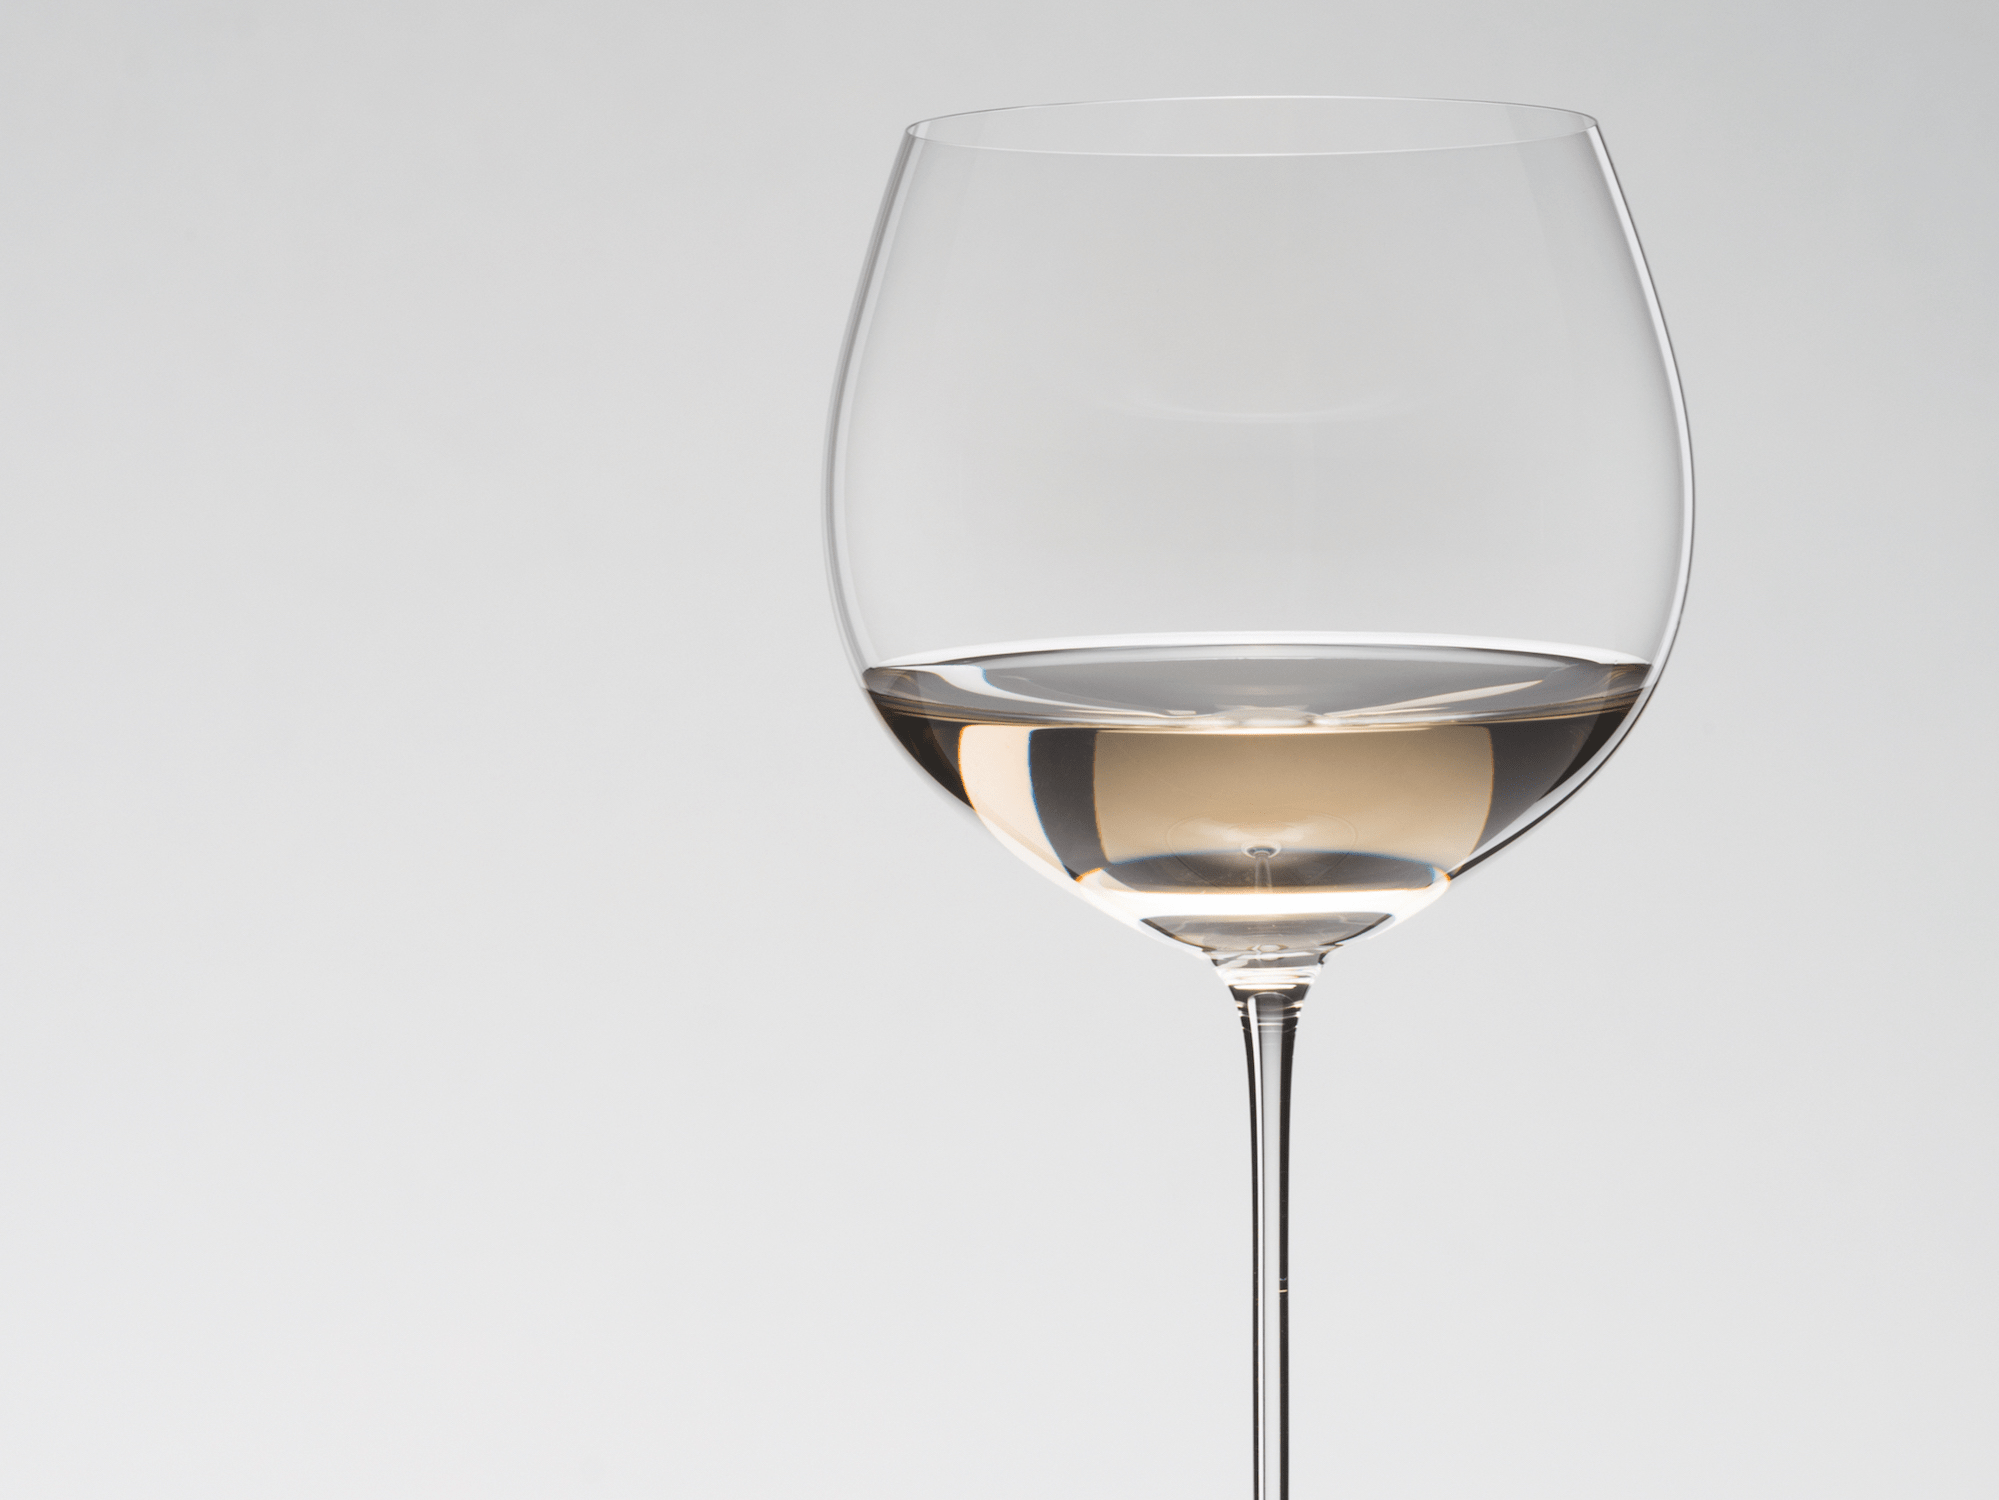 Chardonnay Wine Glass What Wine Glass To Use For Sauvignon Blanc Chardonnay